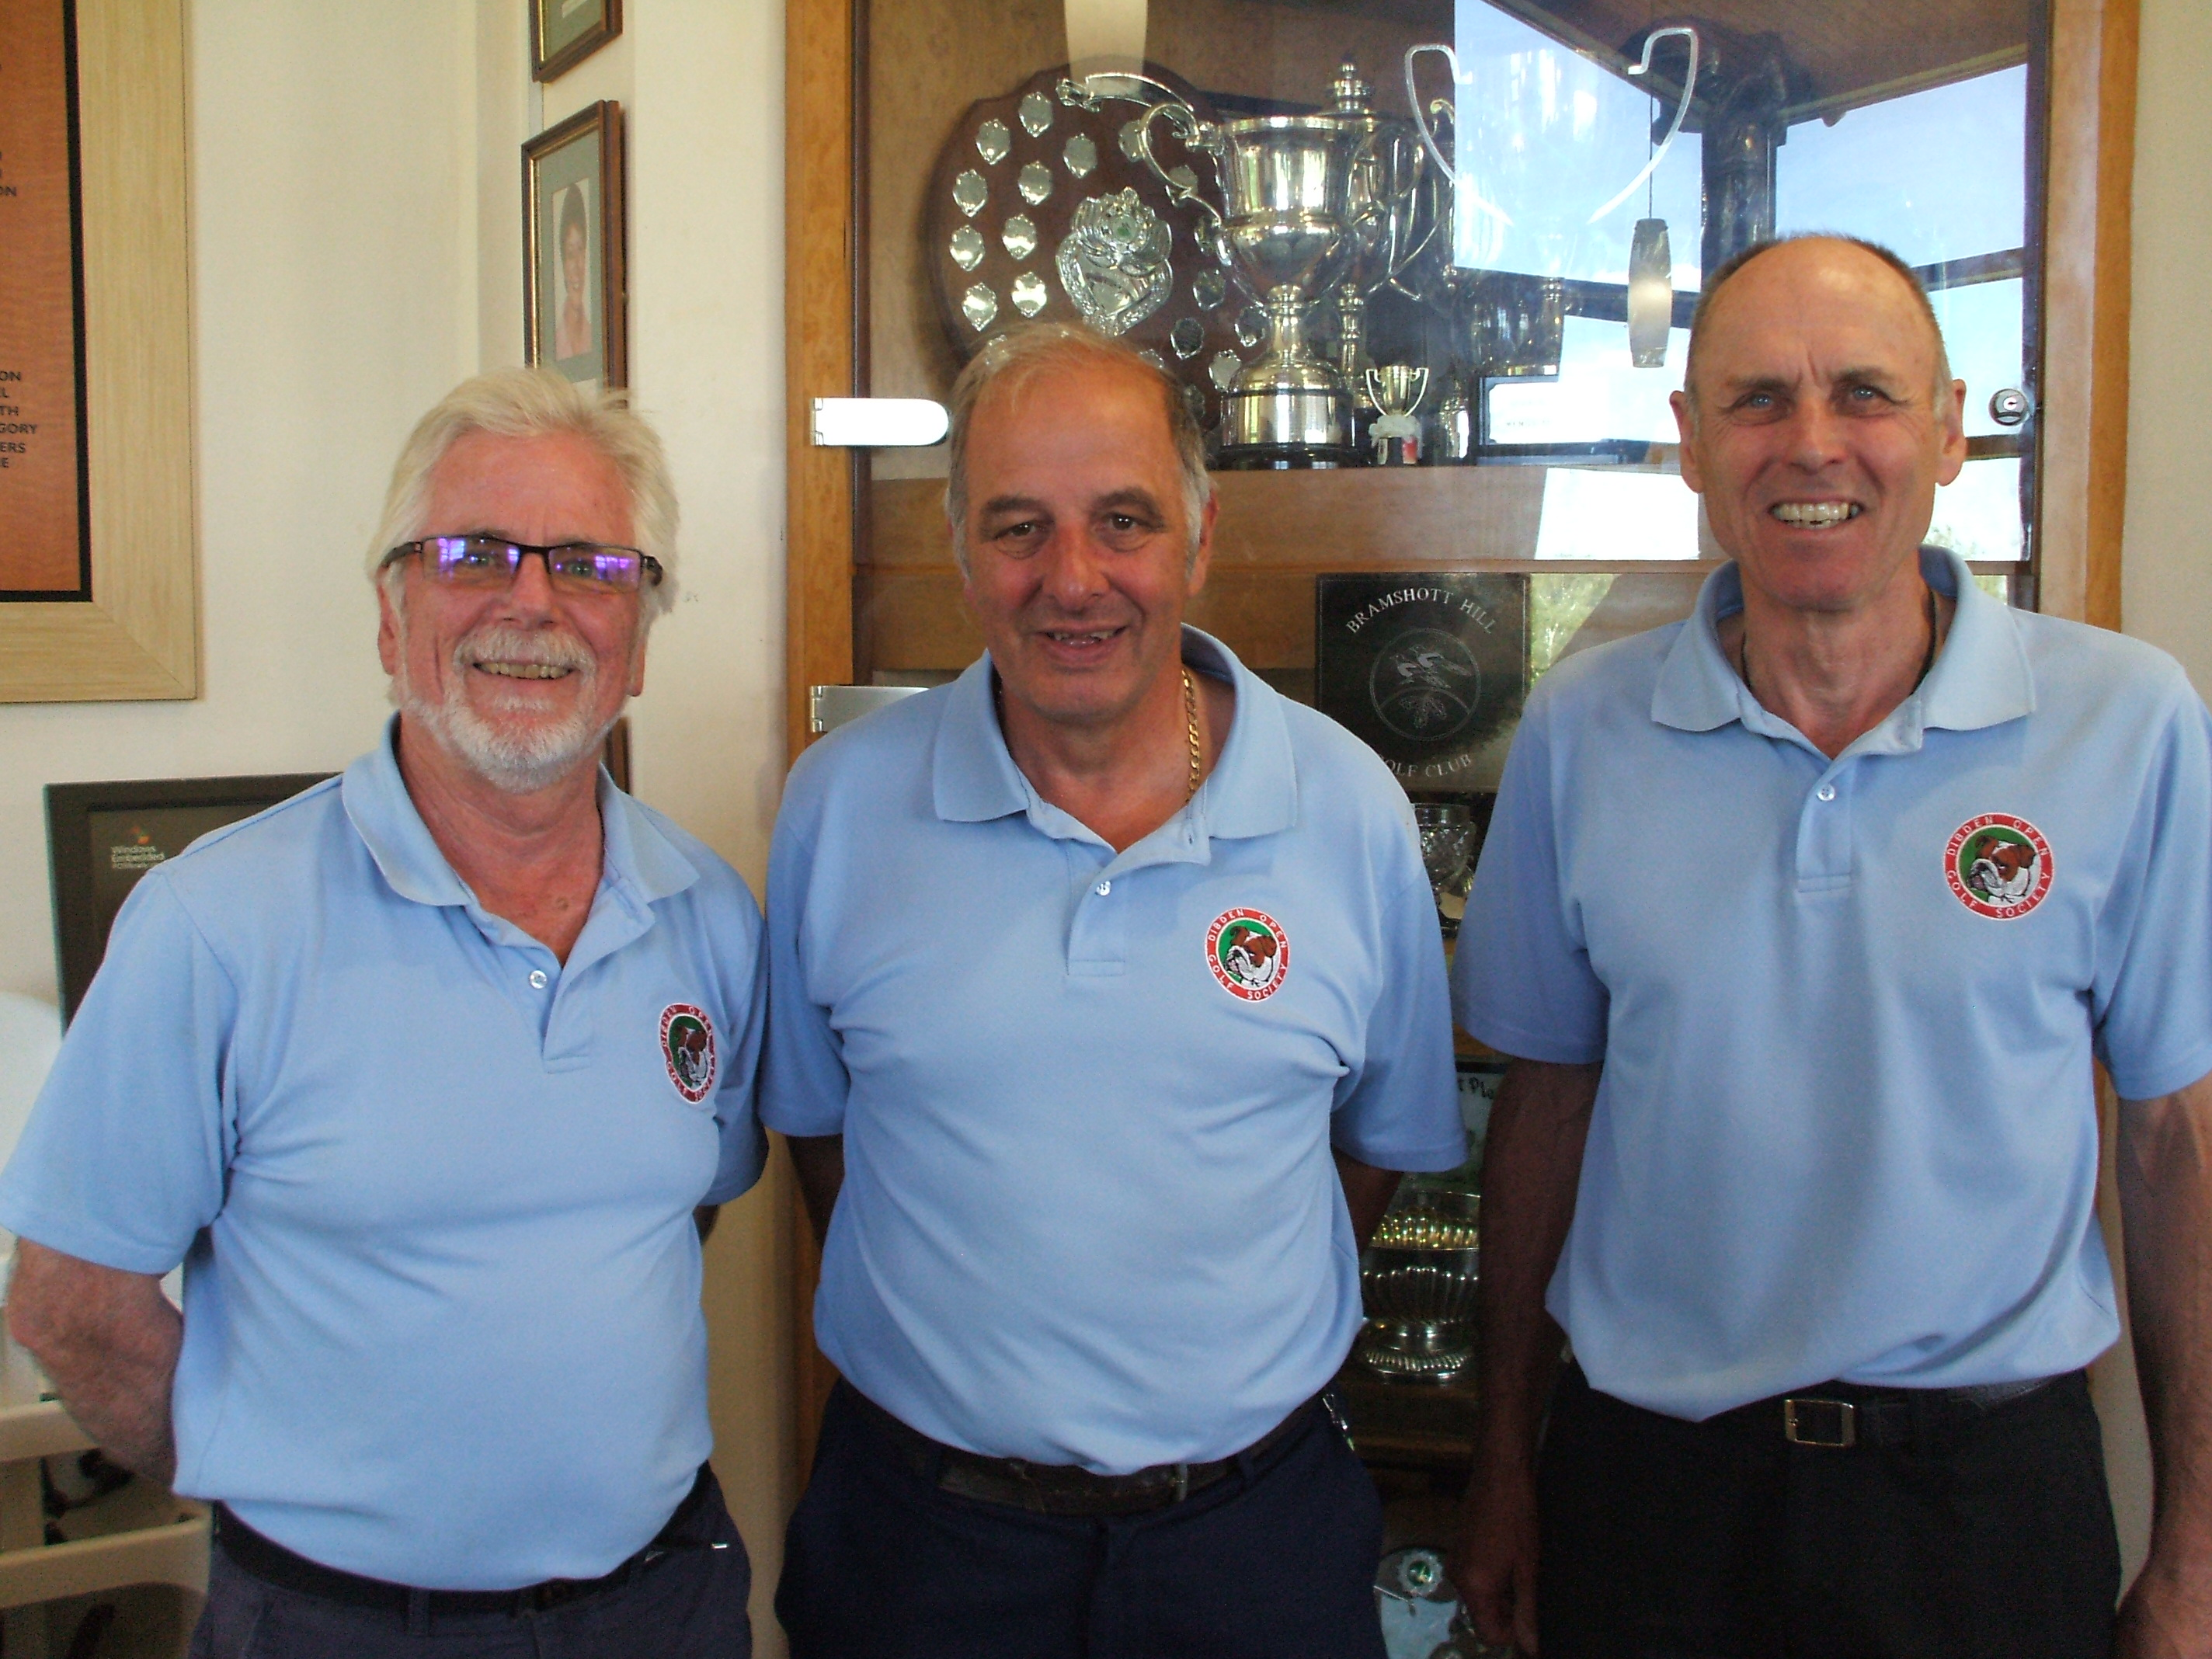 21 May: 2nd place team l to r Steve Hawkes; Colin Viney; Paul Wastell